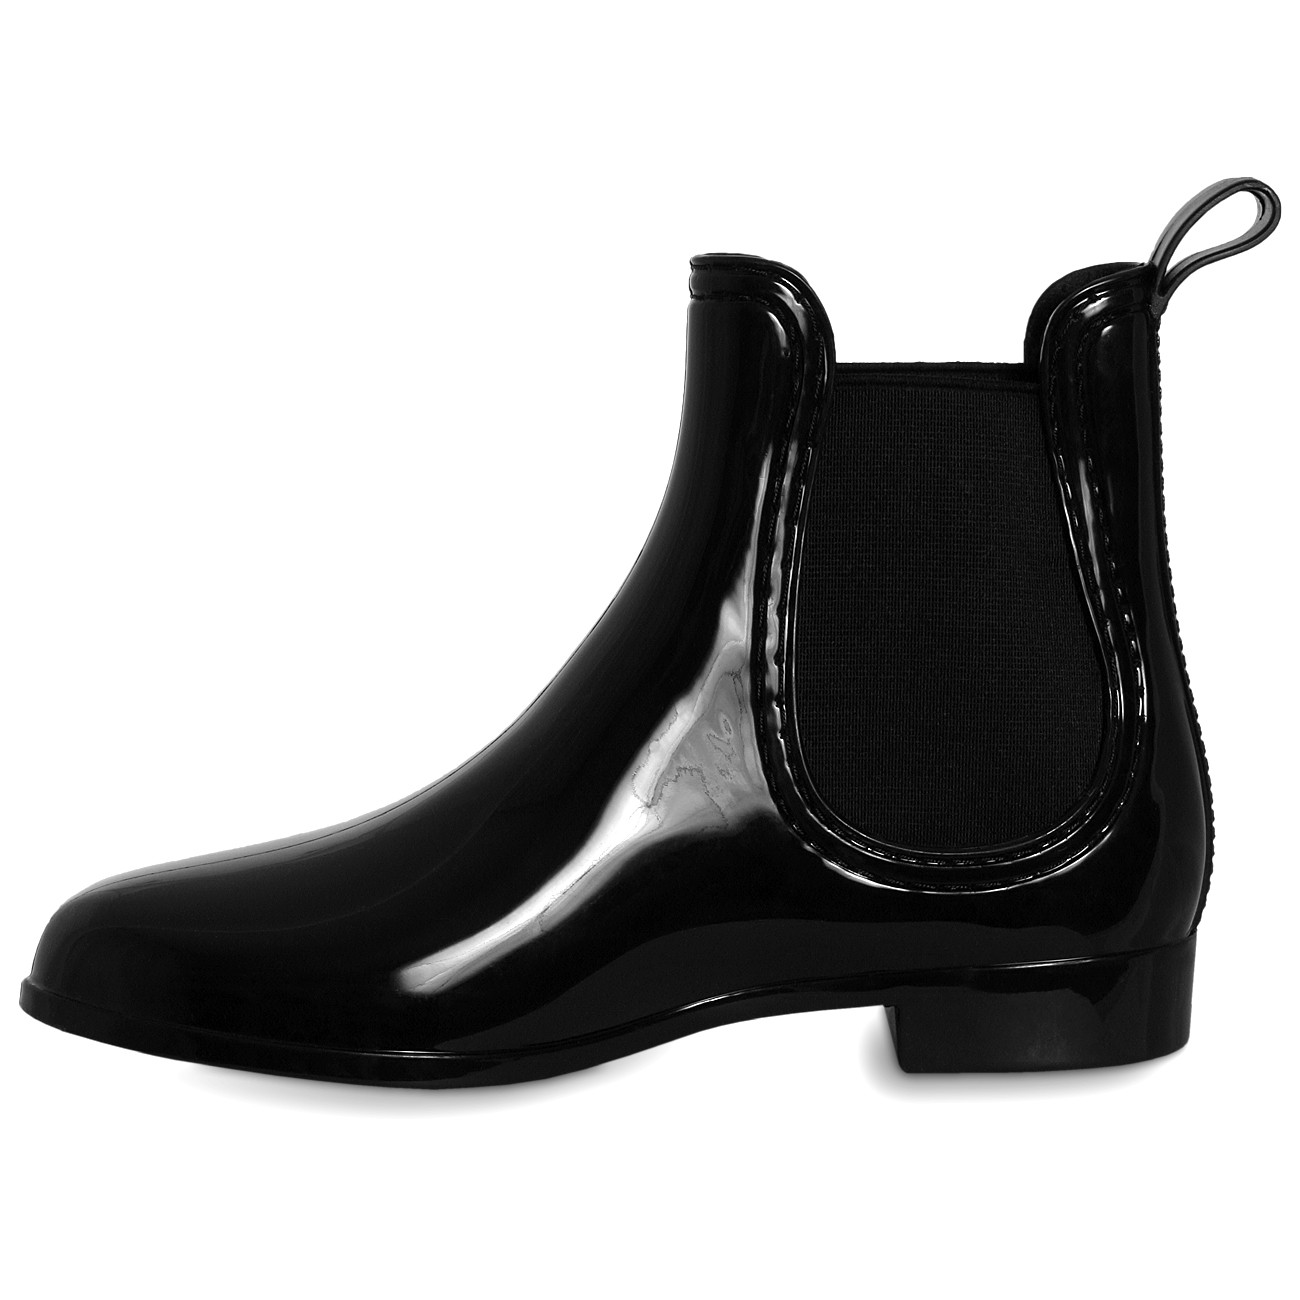 caspar womens patent rubber ankle boots wellies rubber boots shoes. Black Bedroom Furniture Sets. Home Design Ideas